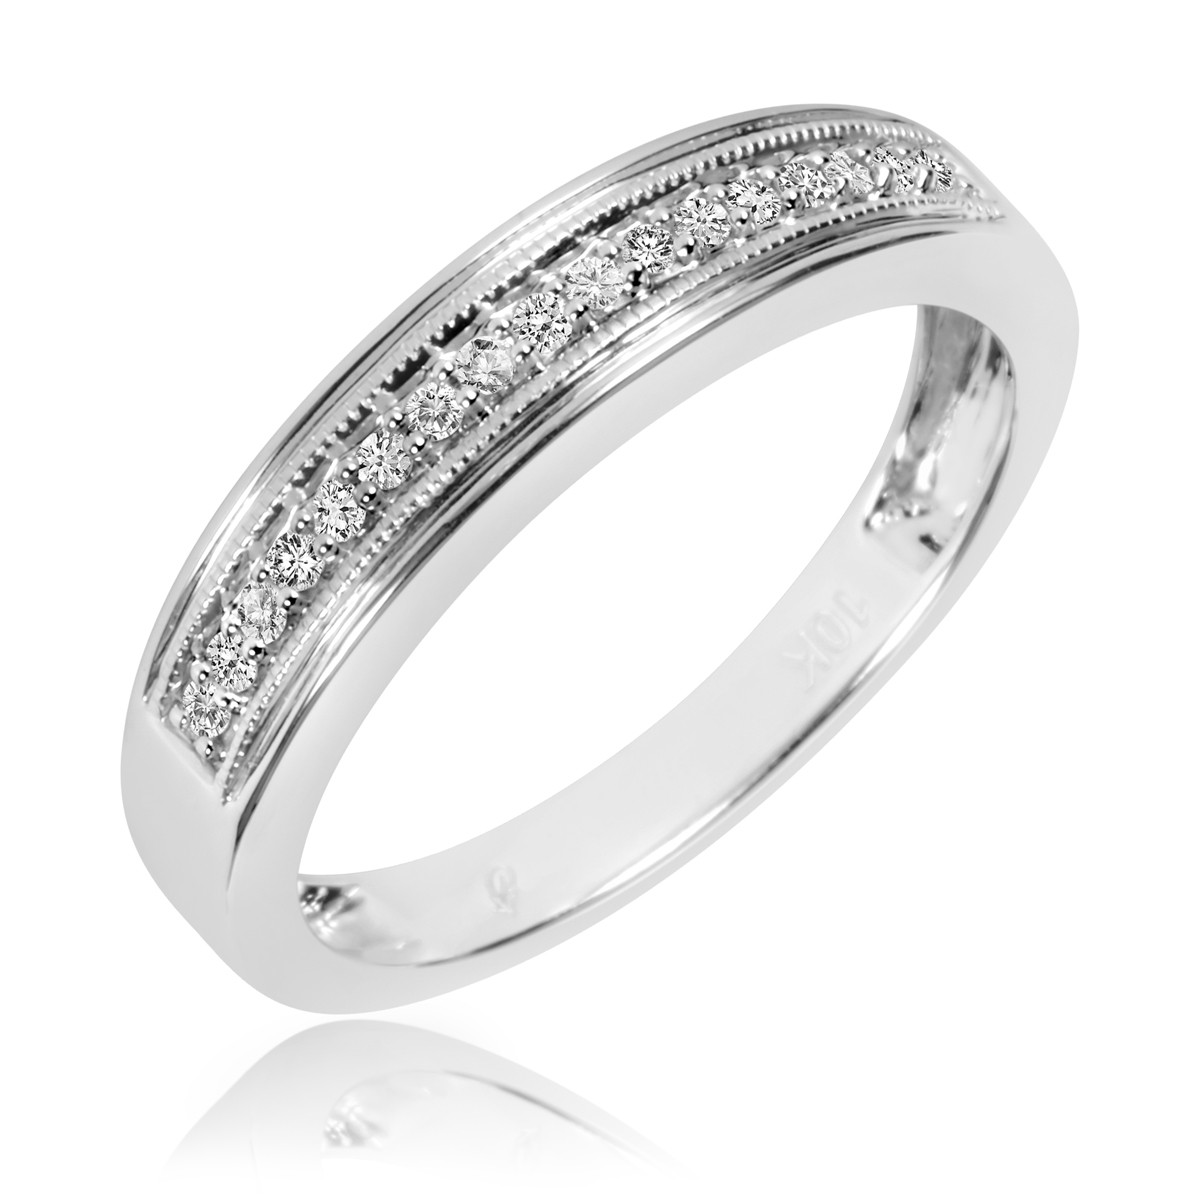 1/6 Carat T.W. Diamond Men's Wedding Band 14K White Gold